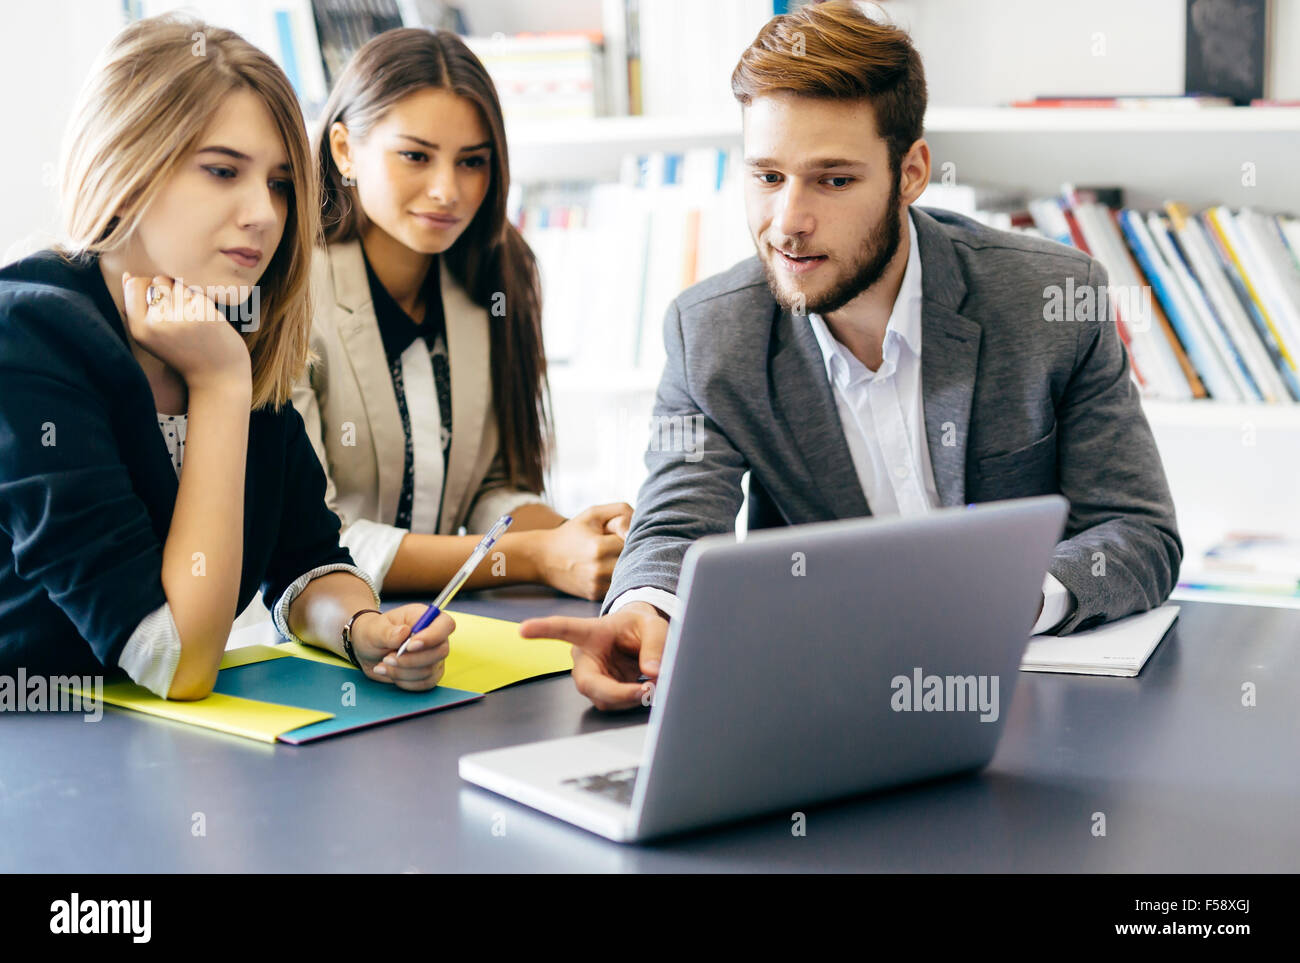 Team of architects and designer discussing future plans - Stock Image